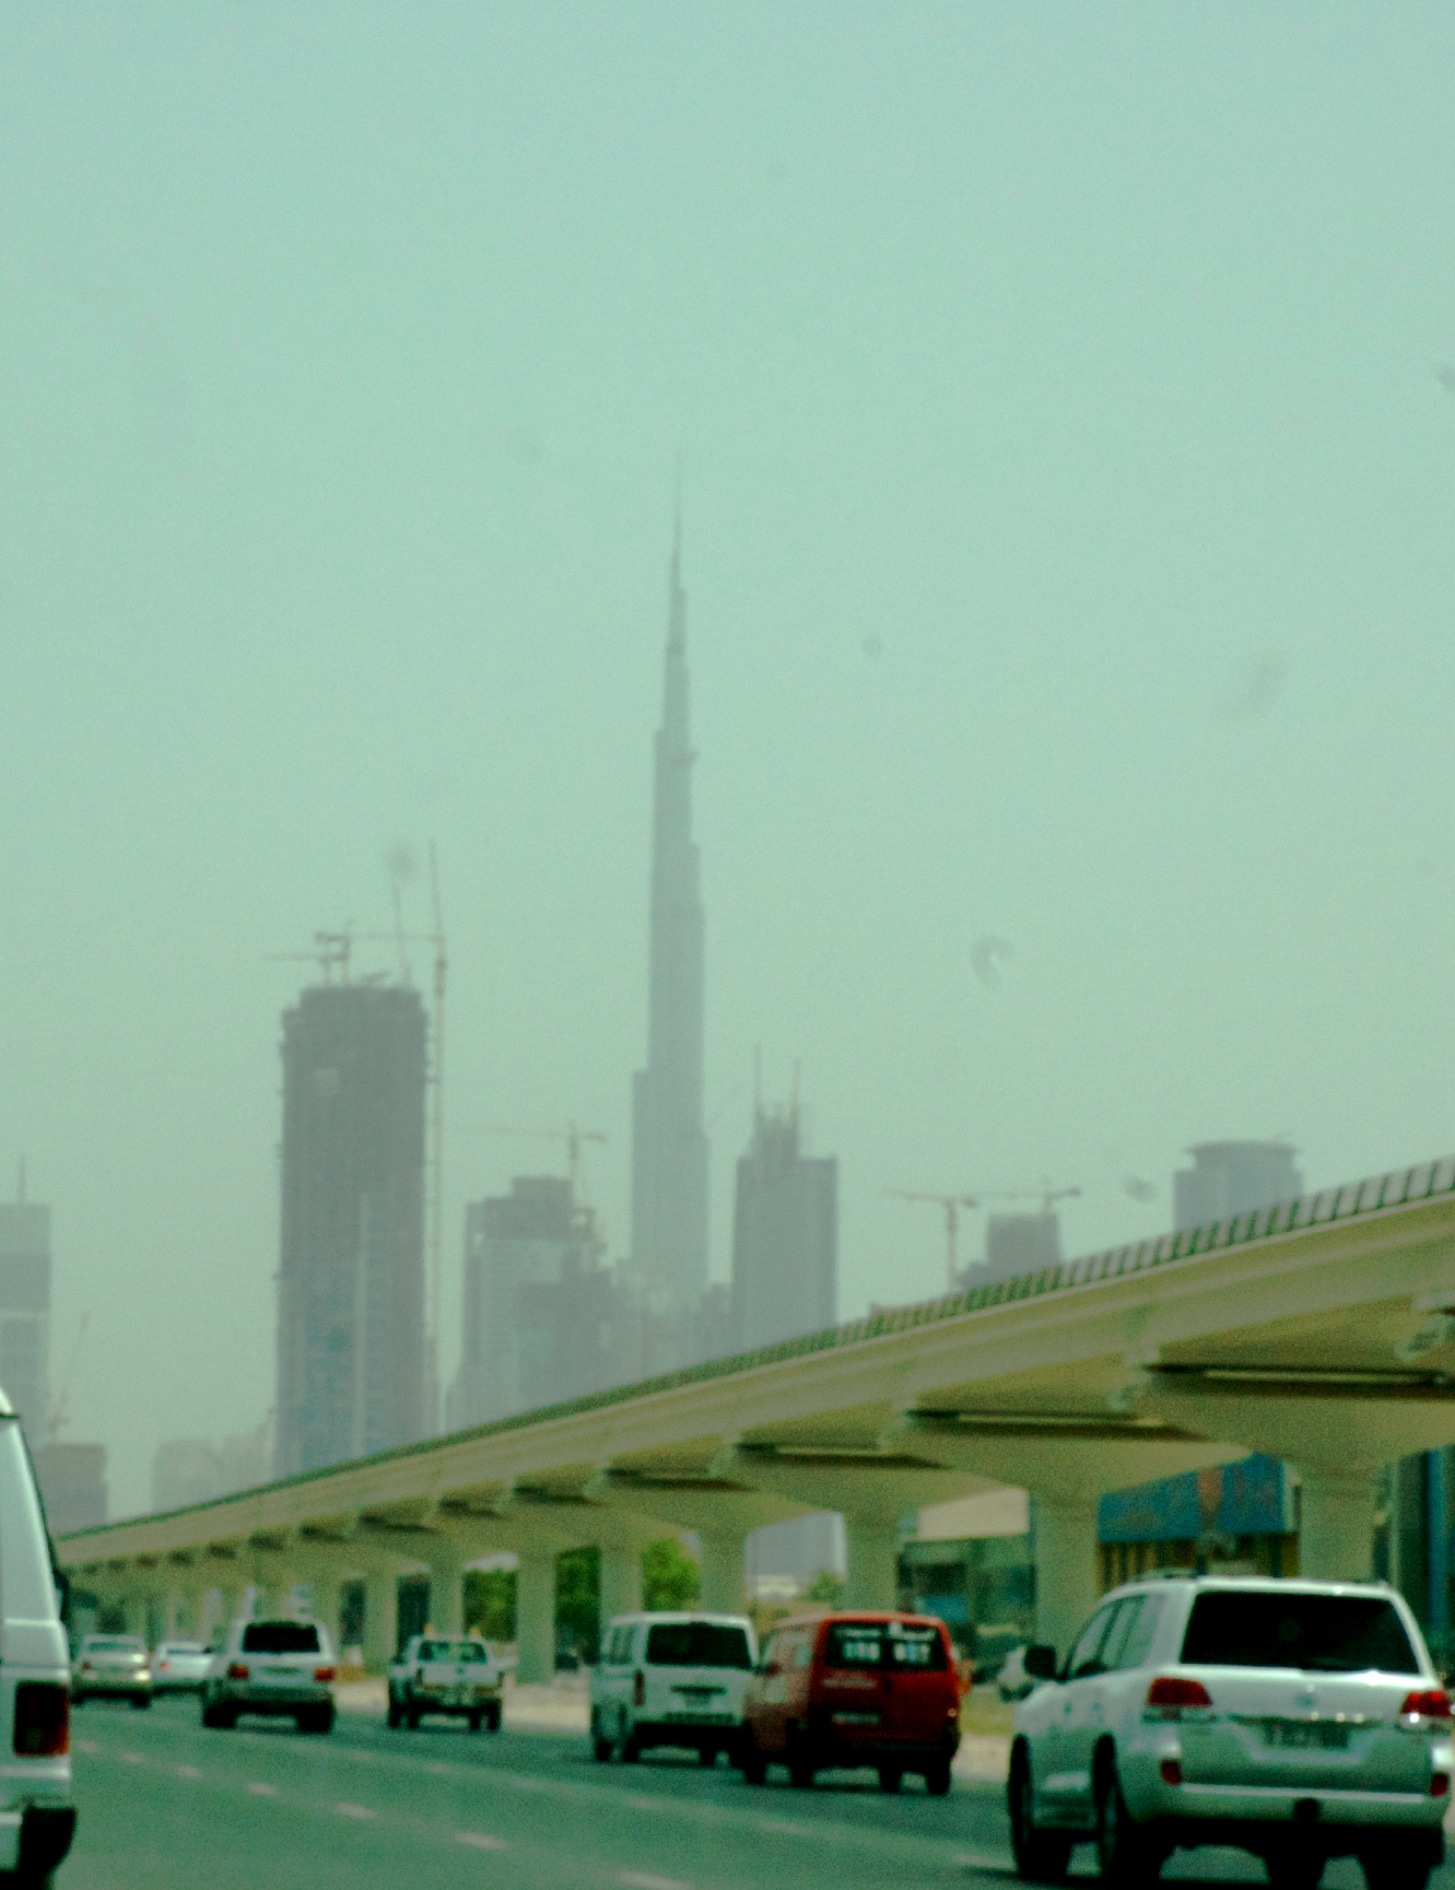 Burj Khalifa, at 828m the tallest man-made structure ever built, towering out above the Dubai skyline